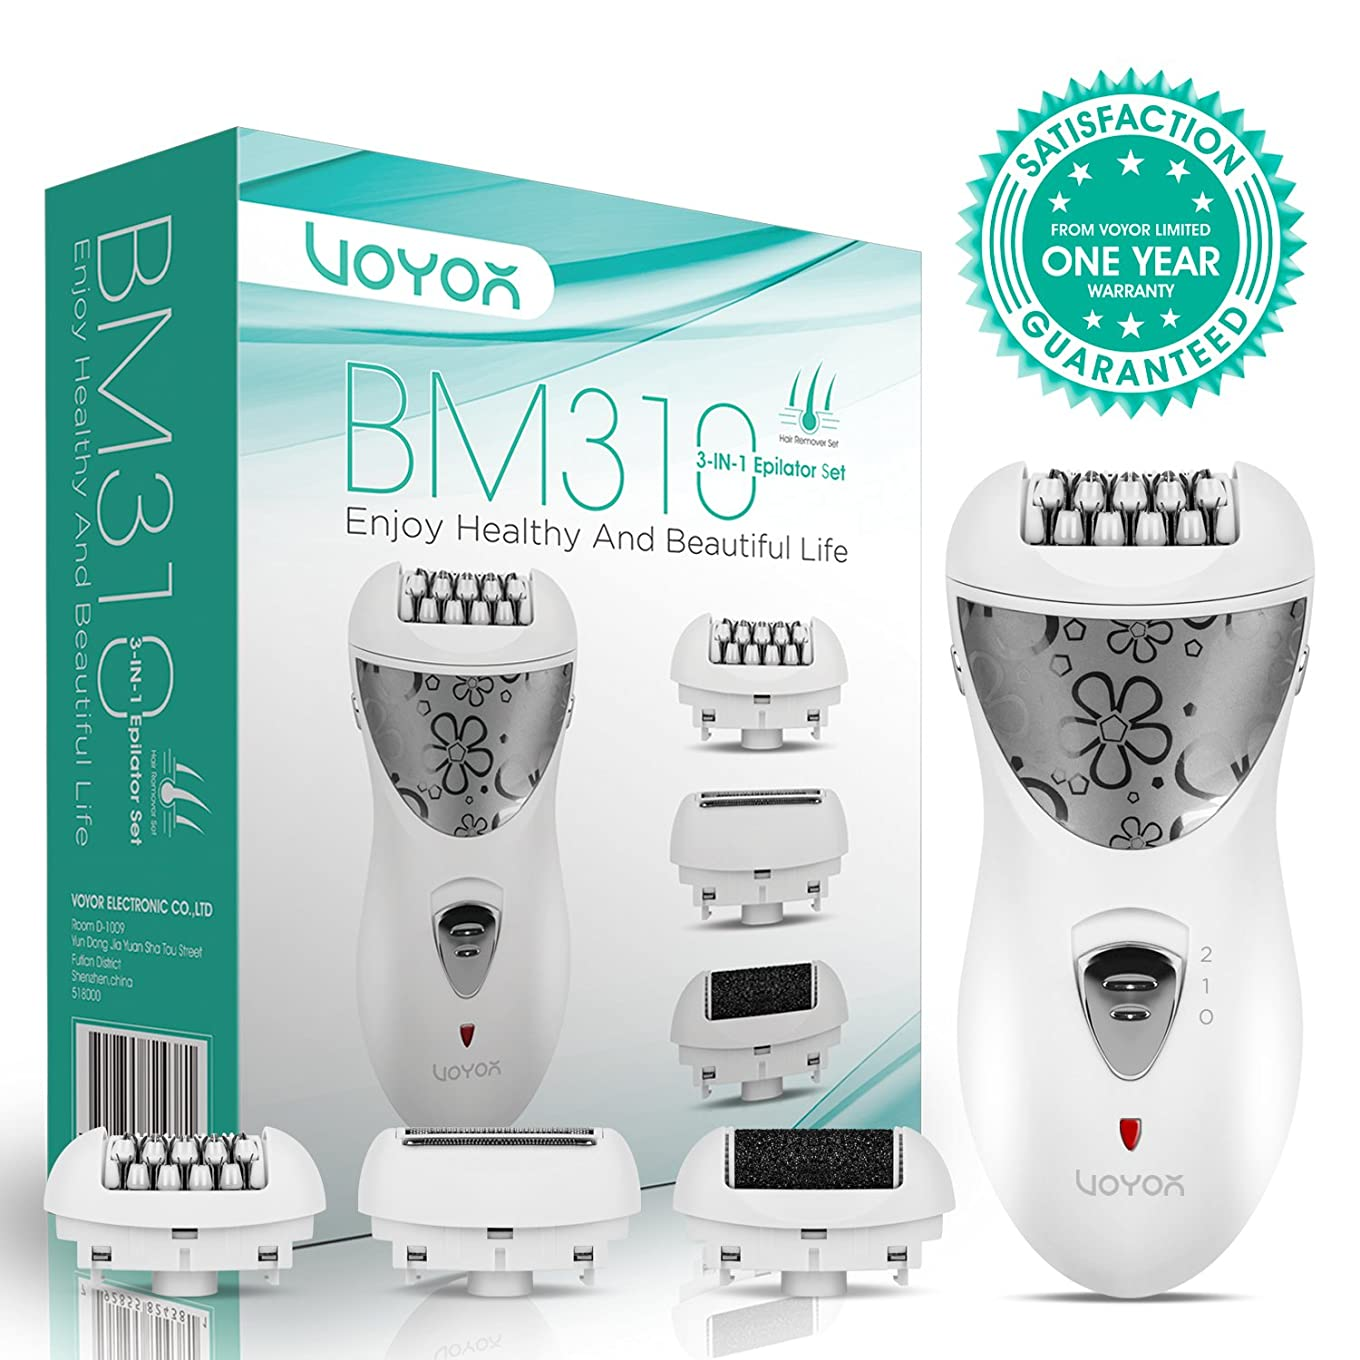 等価視線VOYOR Hair Removal for Women Facial Epilator Electric Razor Cordless Callus Remover 3-in-1 Hair Remover Set Rechargeable Lady Shaver BM310 141[並行輸入]